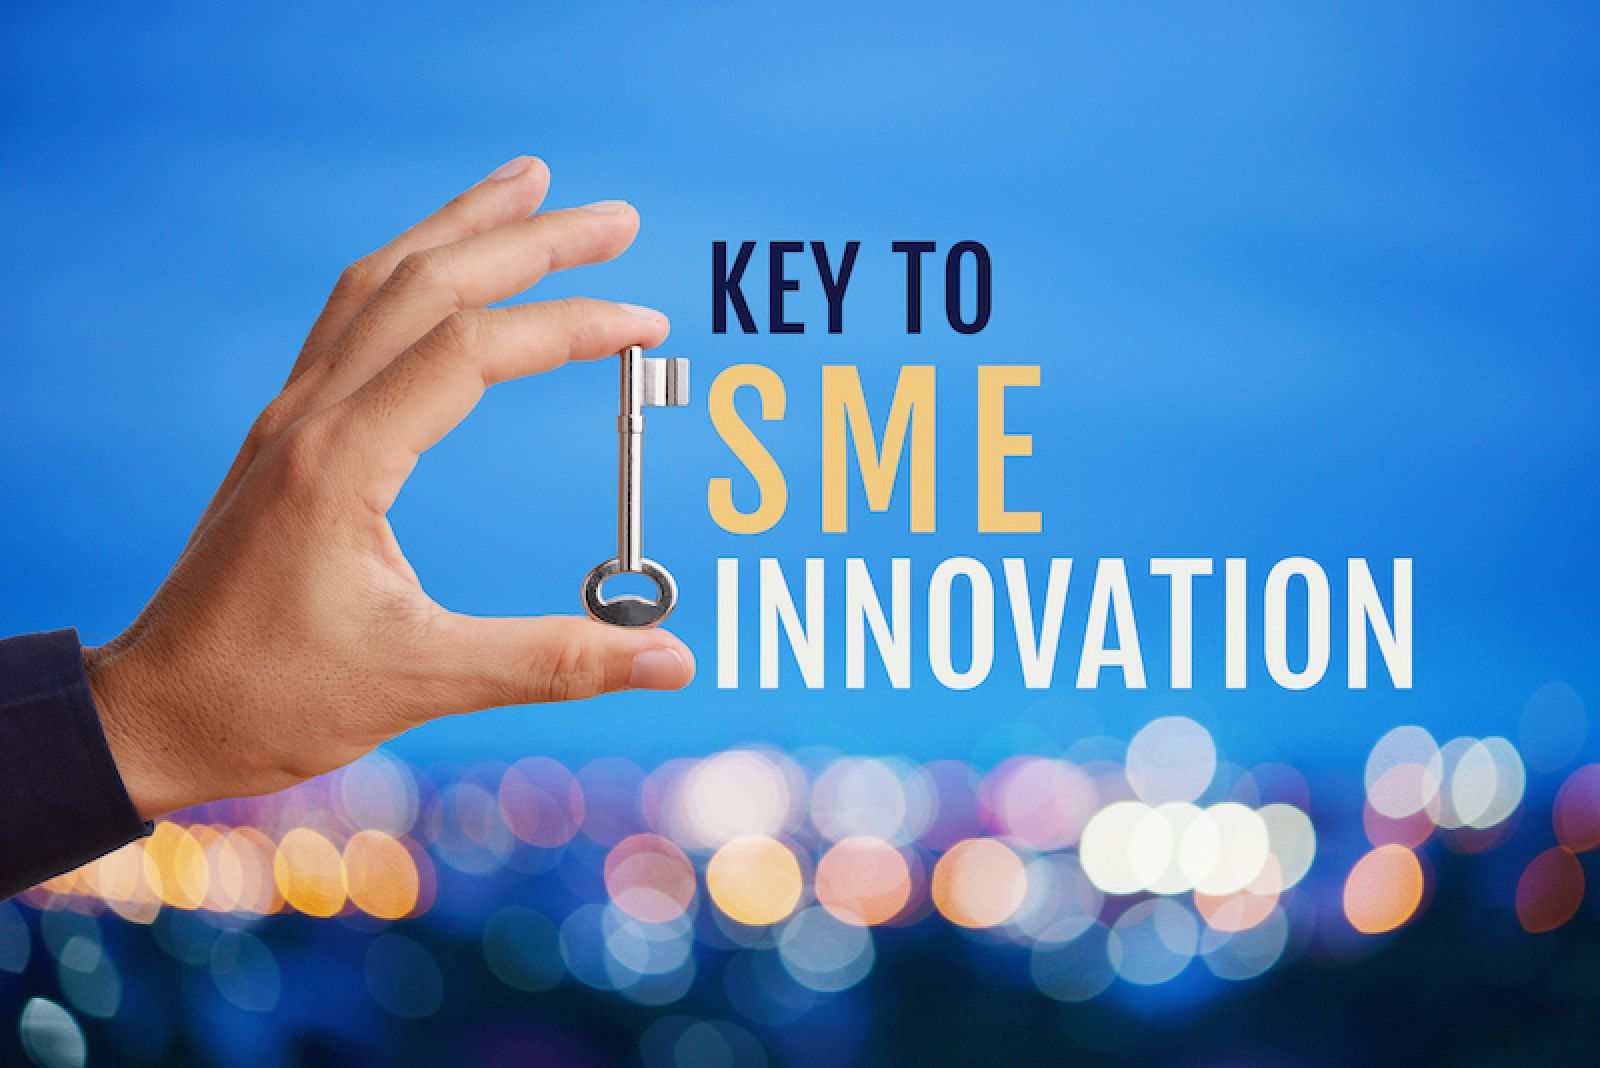 What can SMEs do to become more innovative and learn and apply routines to innovate better on a permeant basis?